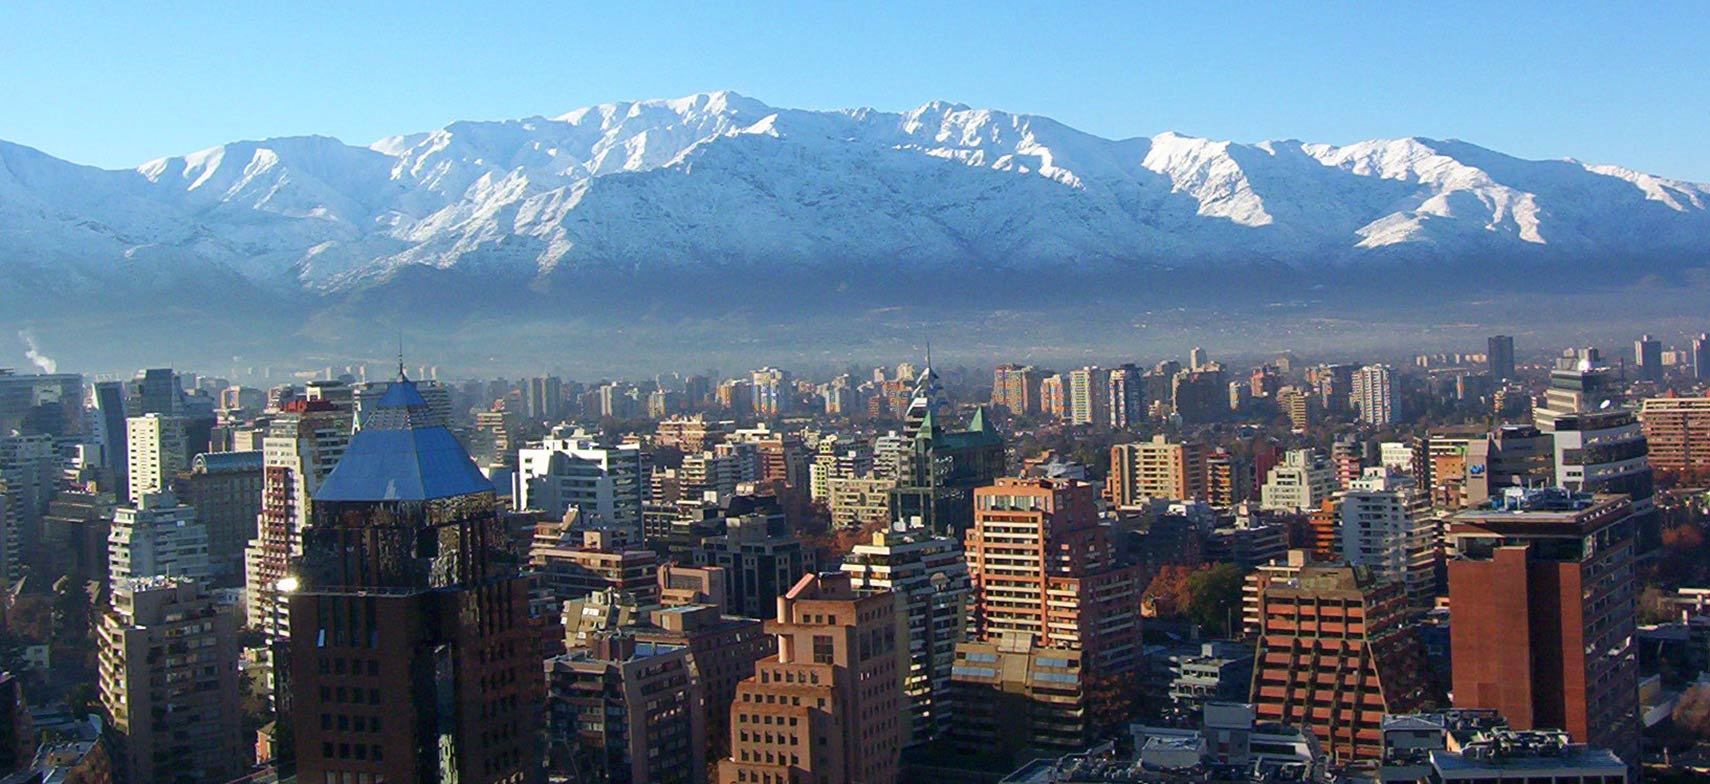 Google Map of Santiago de Chile Chiles capital city Nations